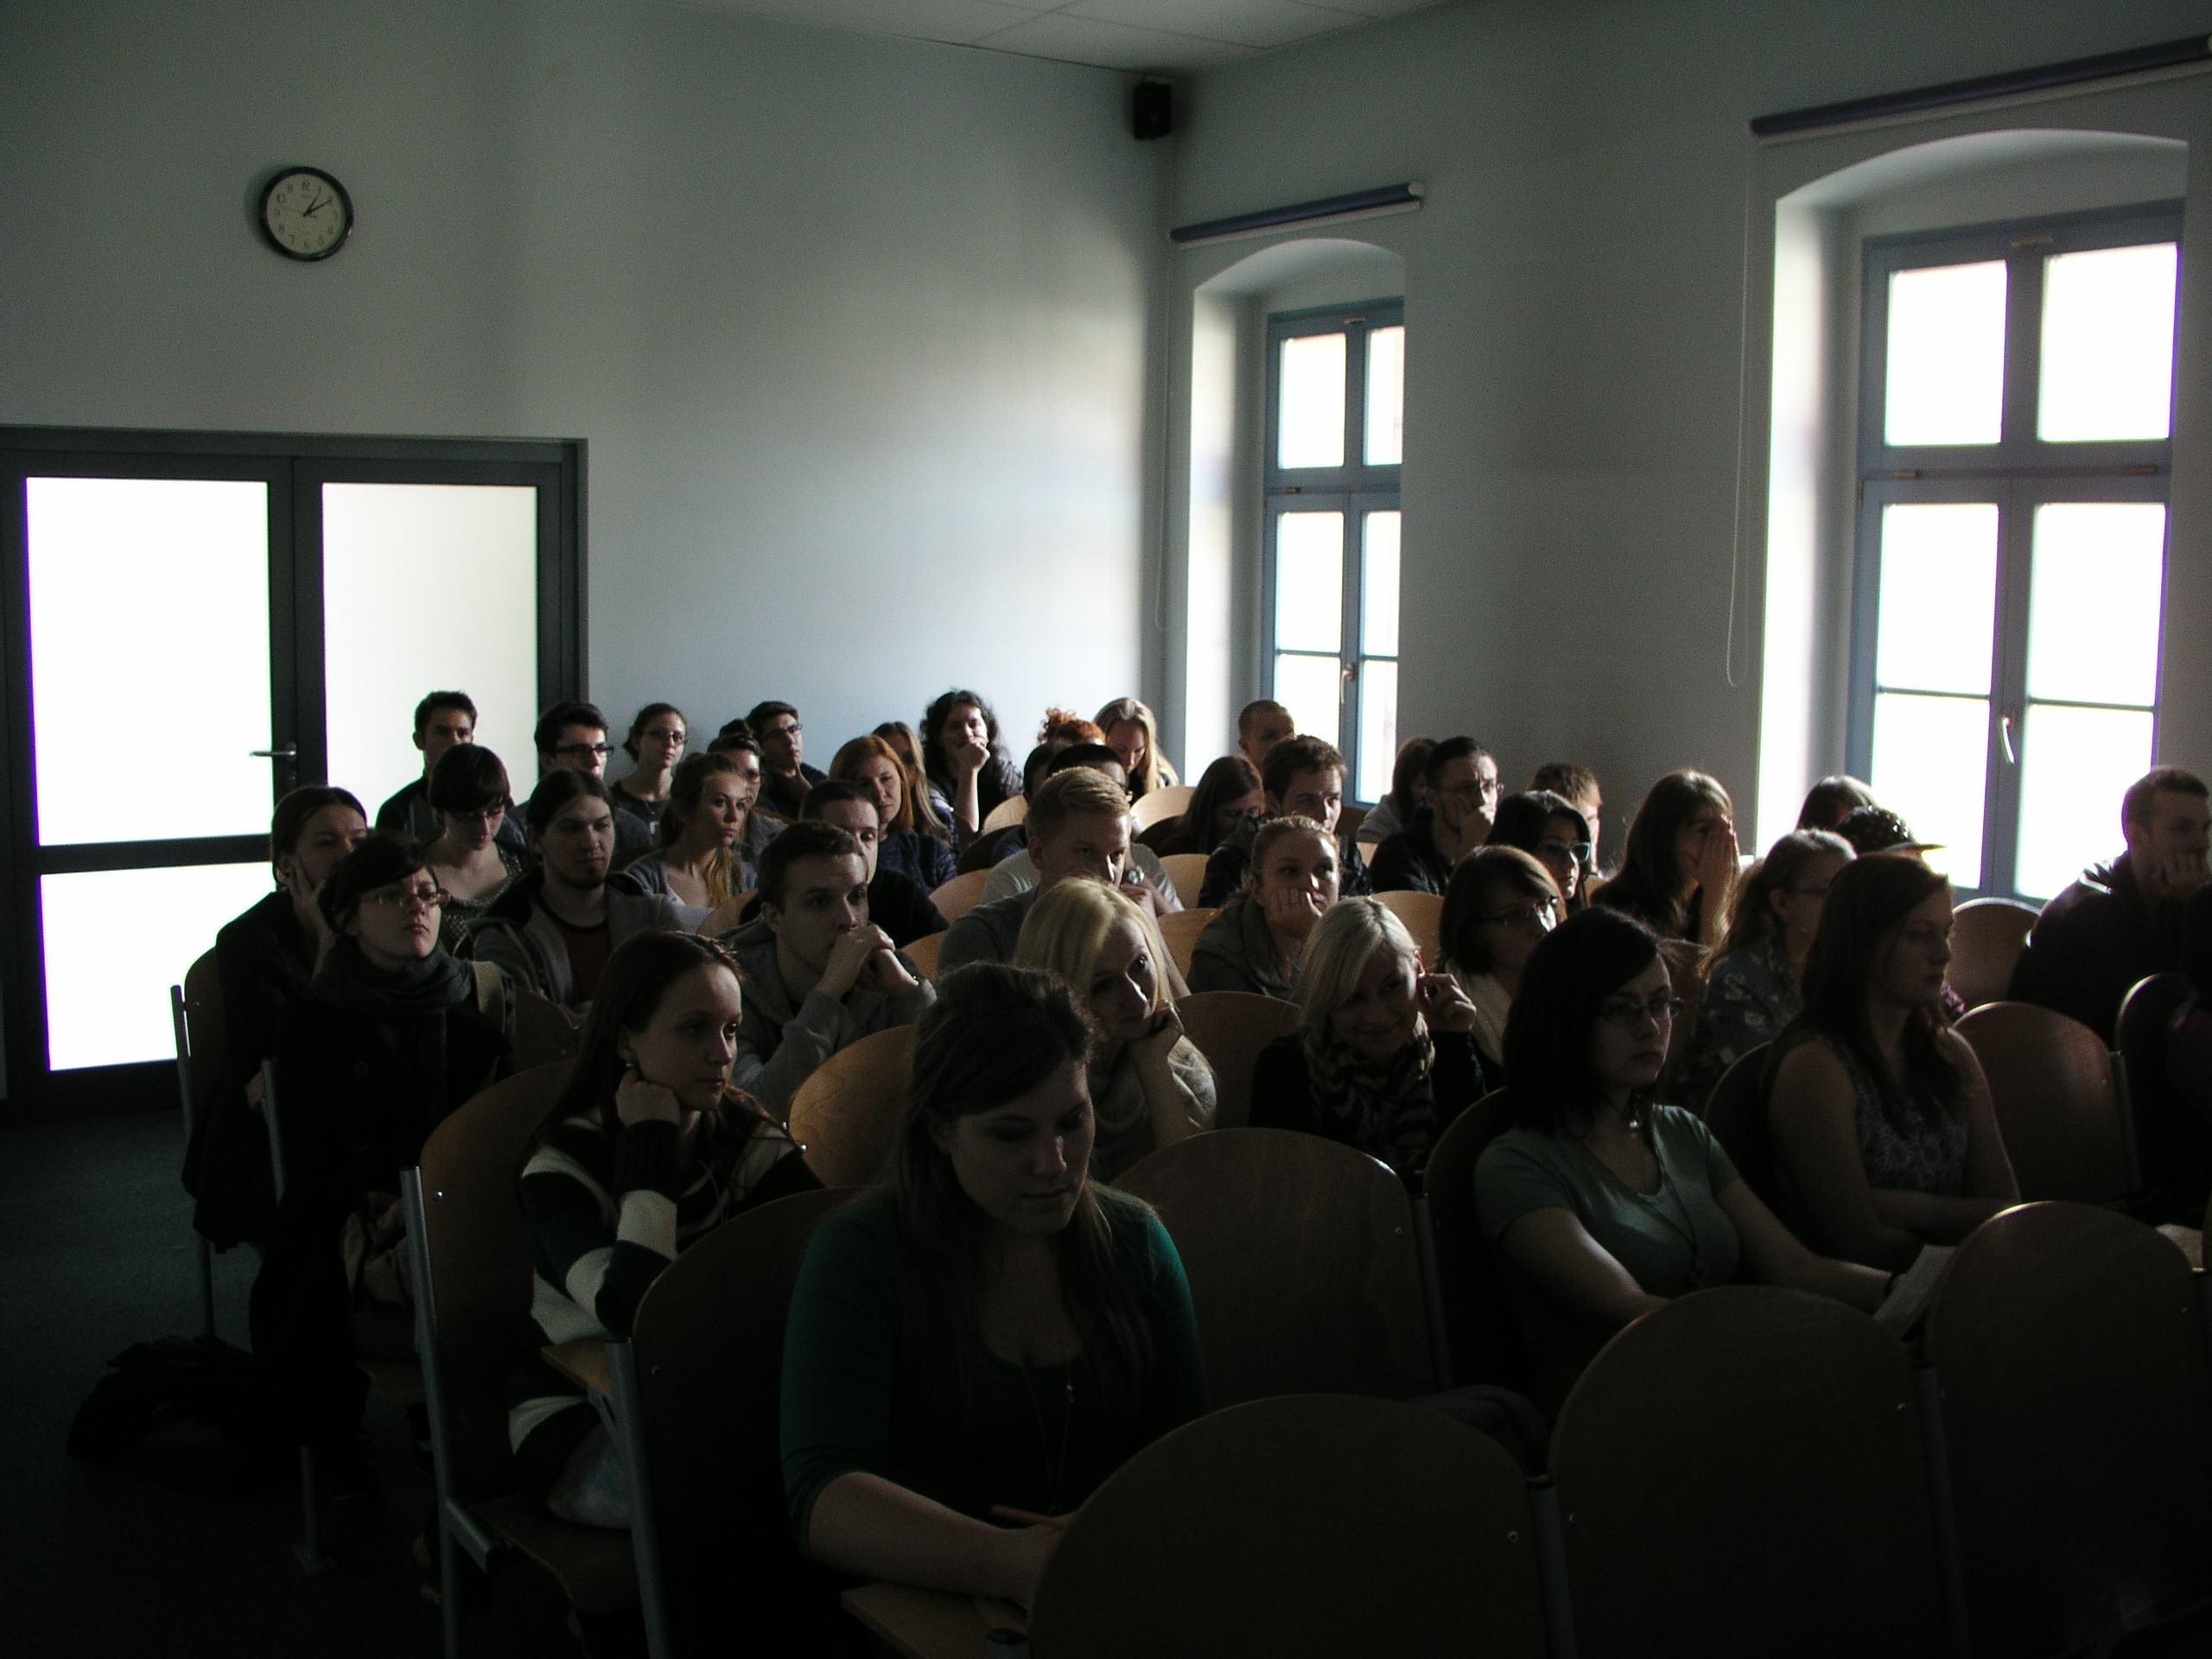 LvS in Opole Poland, view of students